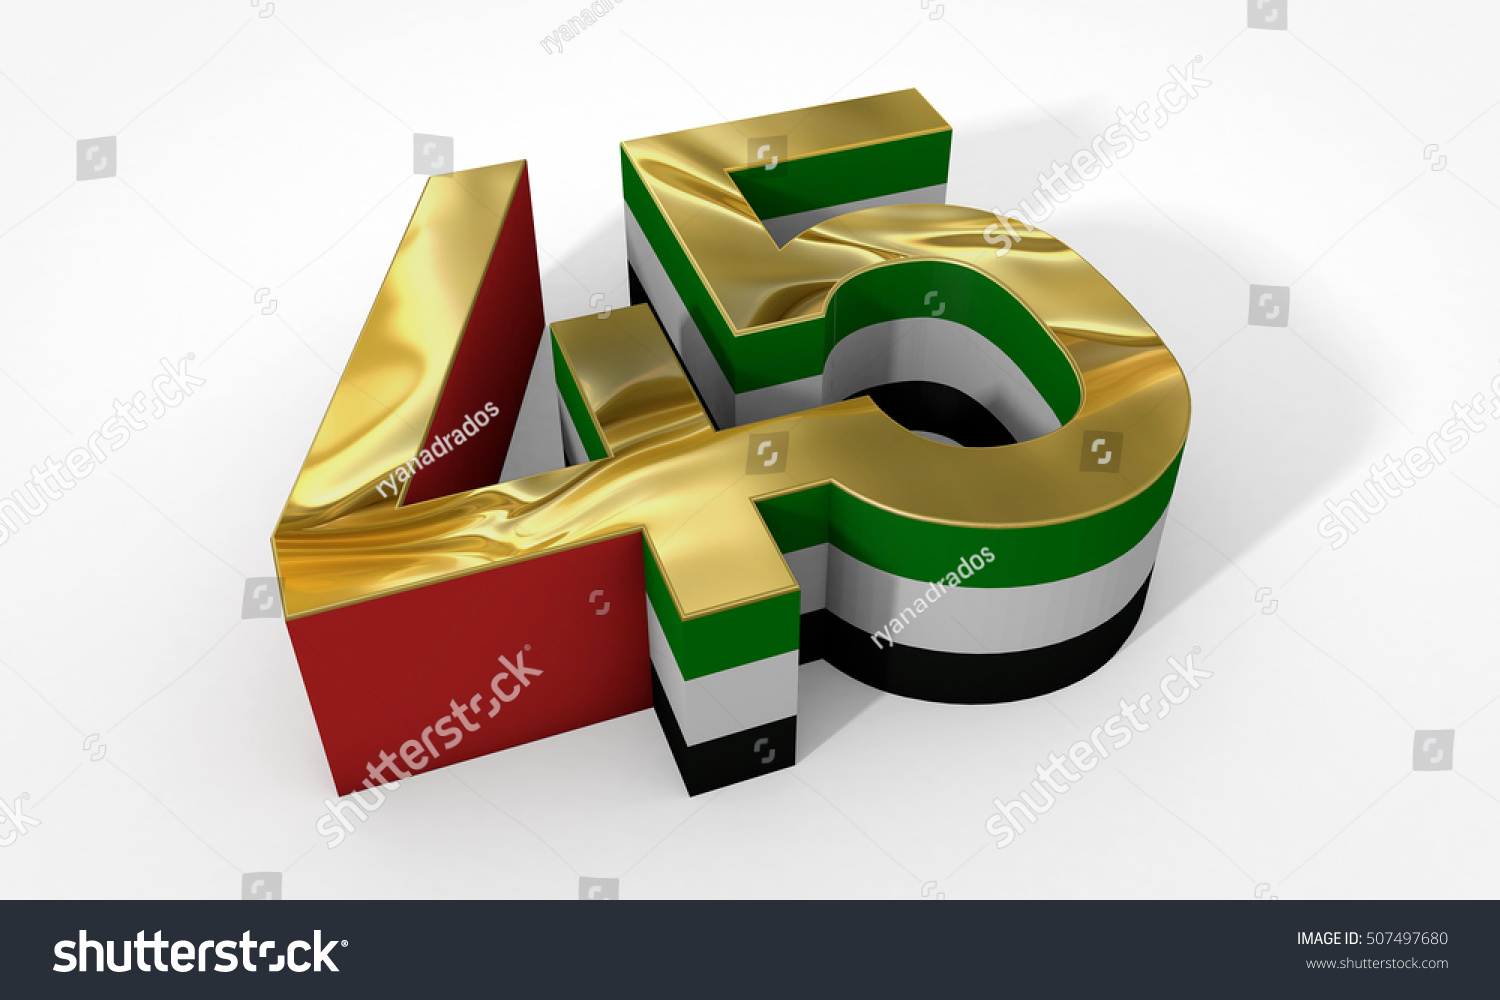 45 uae national day 3d rendering stock illustration 507497680 45 uae national day 3d rendering biocorpaavc Images